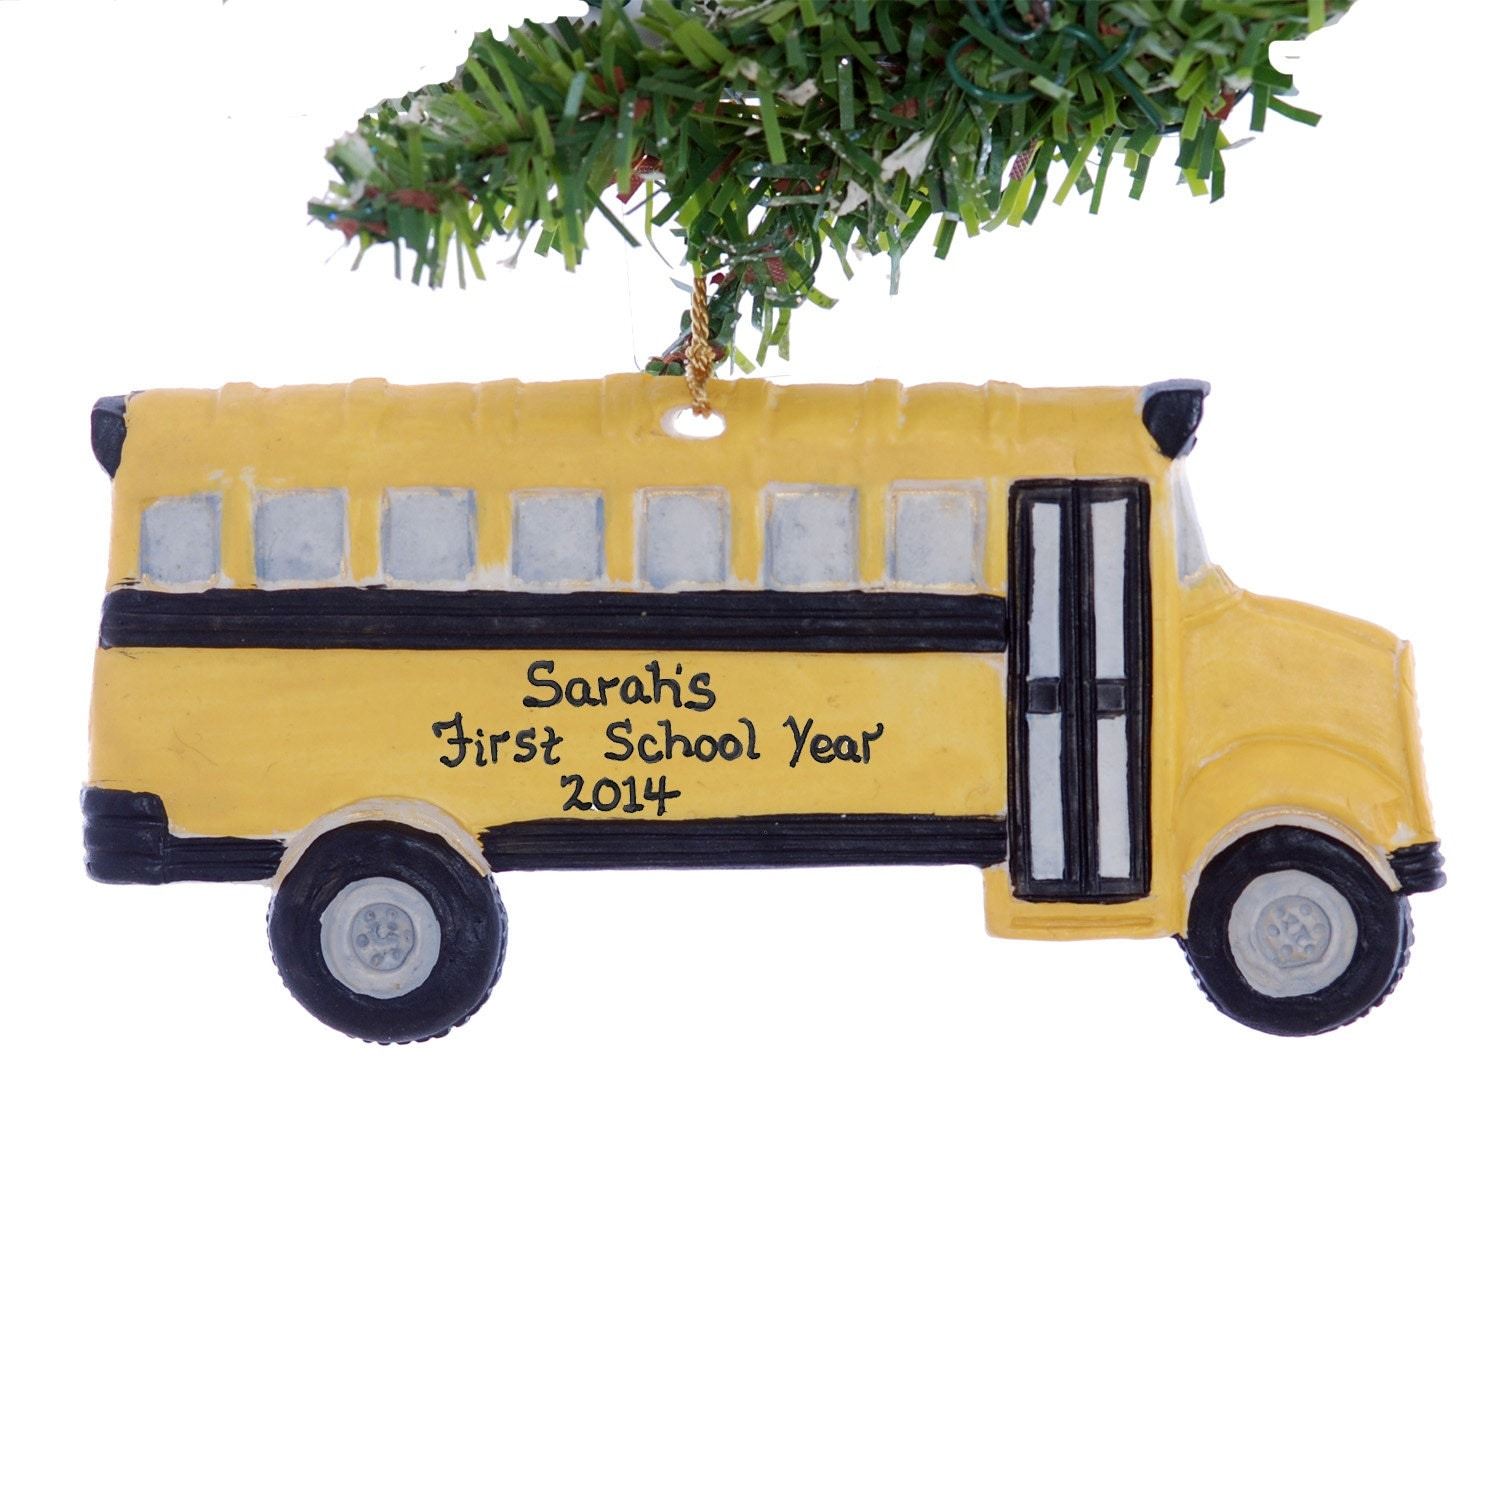 Blank ornaments to personalize - Personalized School Bus Ornament Yellow School Bus Christmas Ornament Personalized Free First Year